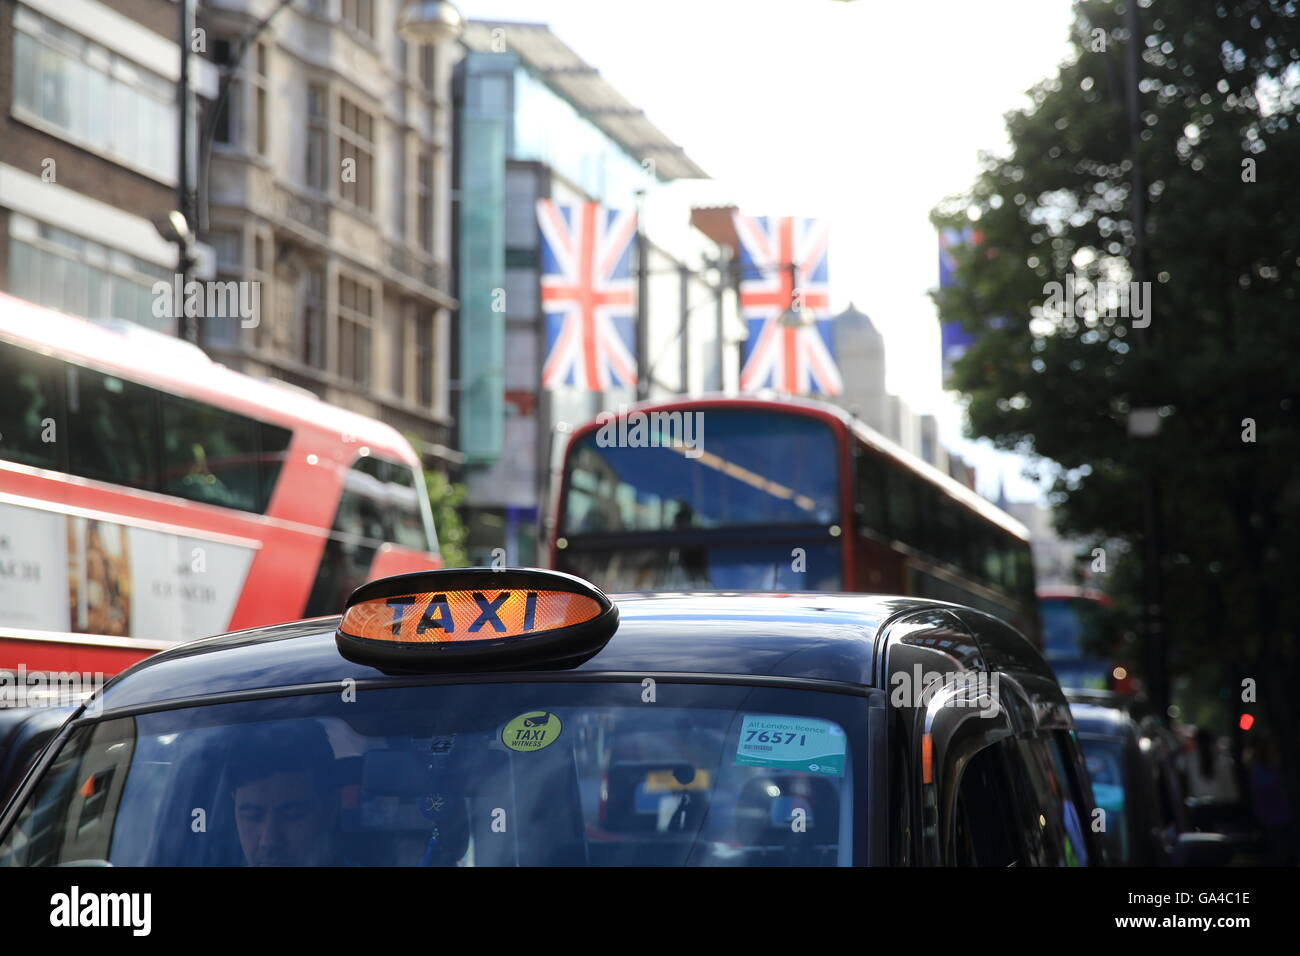 Oxford Street in London's West End, to be pedestrianized by 2020, decided by Mayor Sadiq Khan, in England, UK - Stock Image